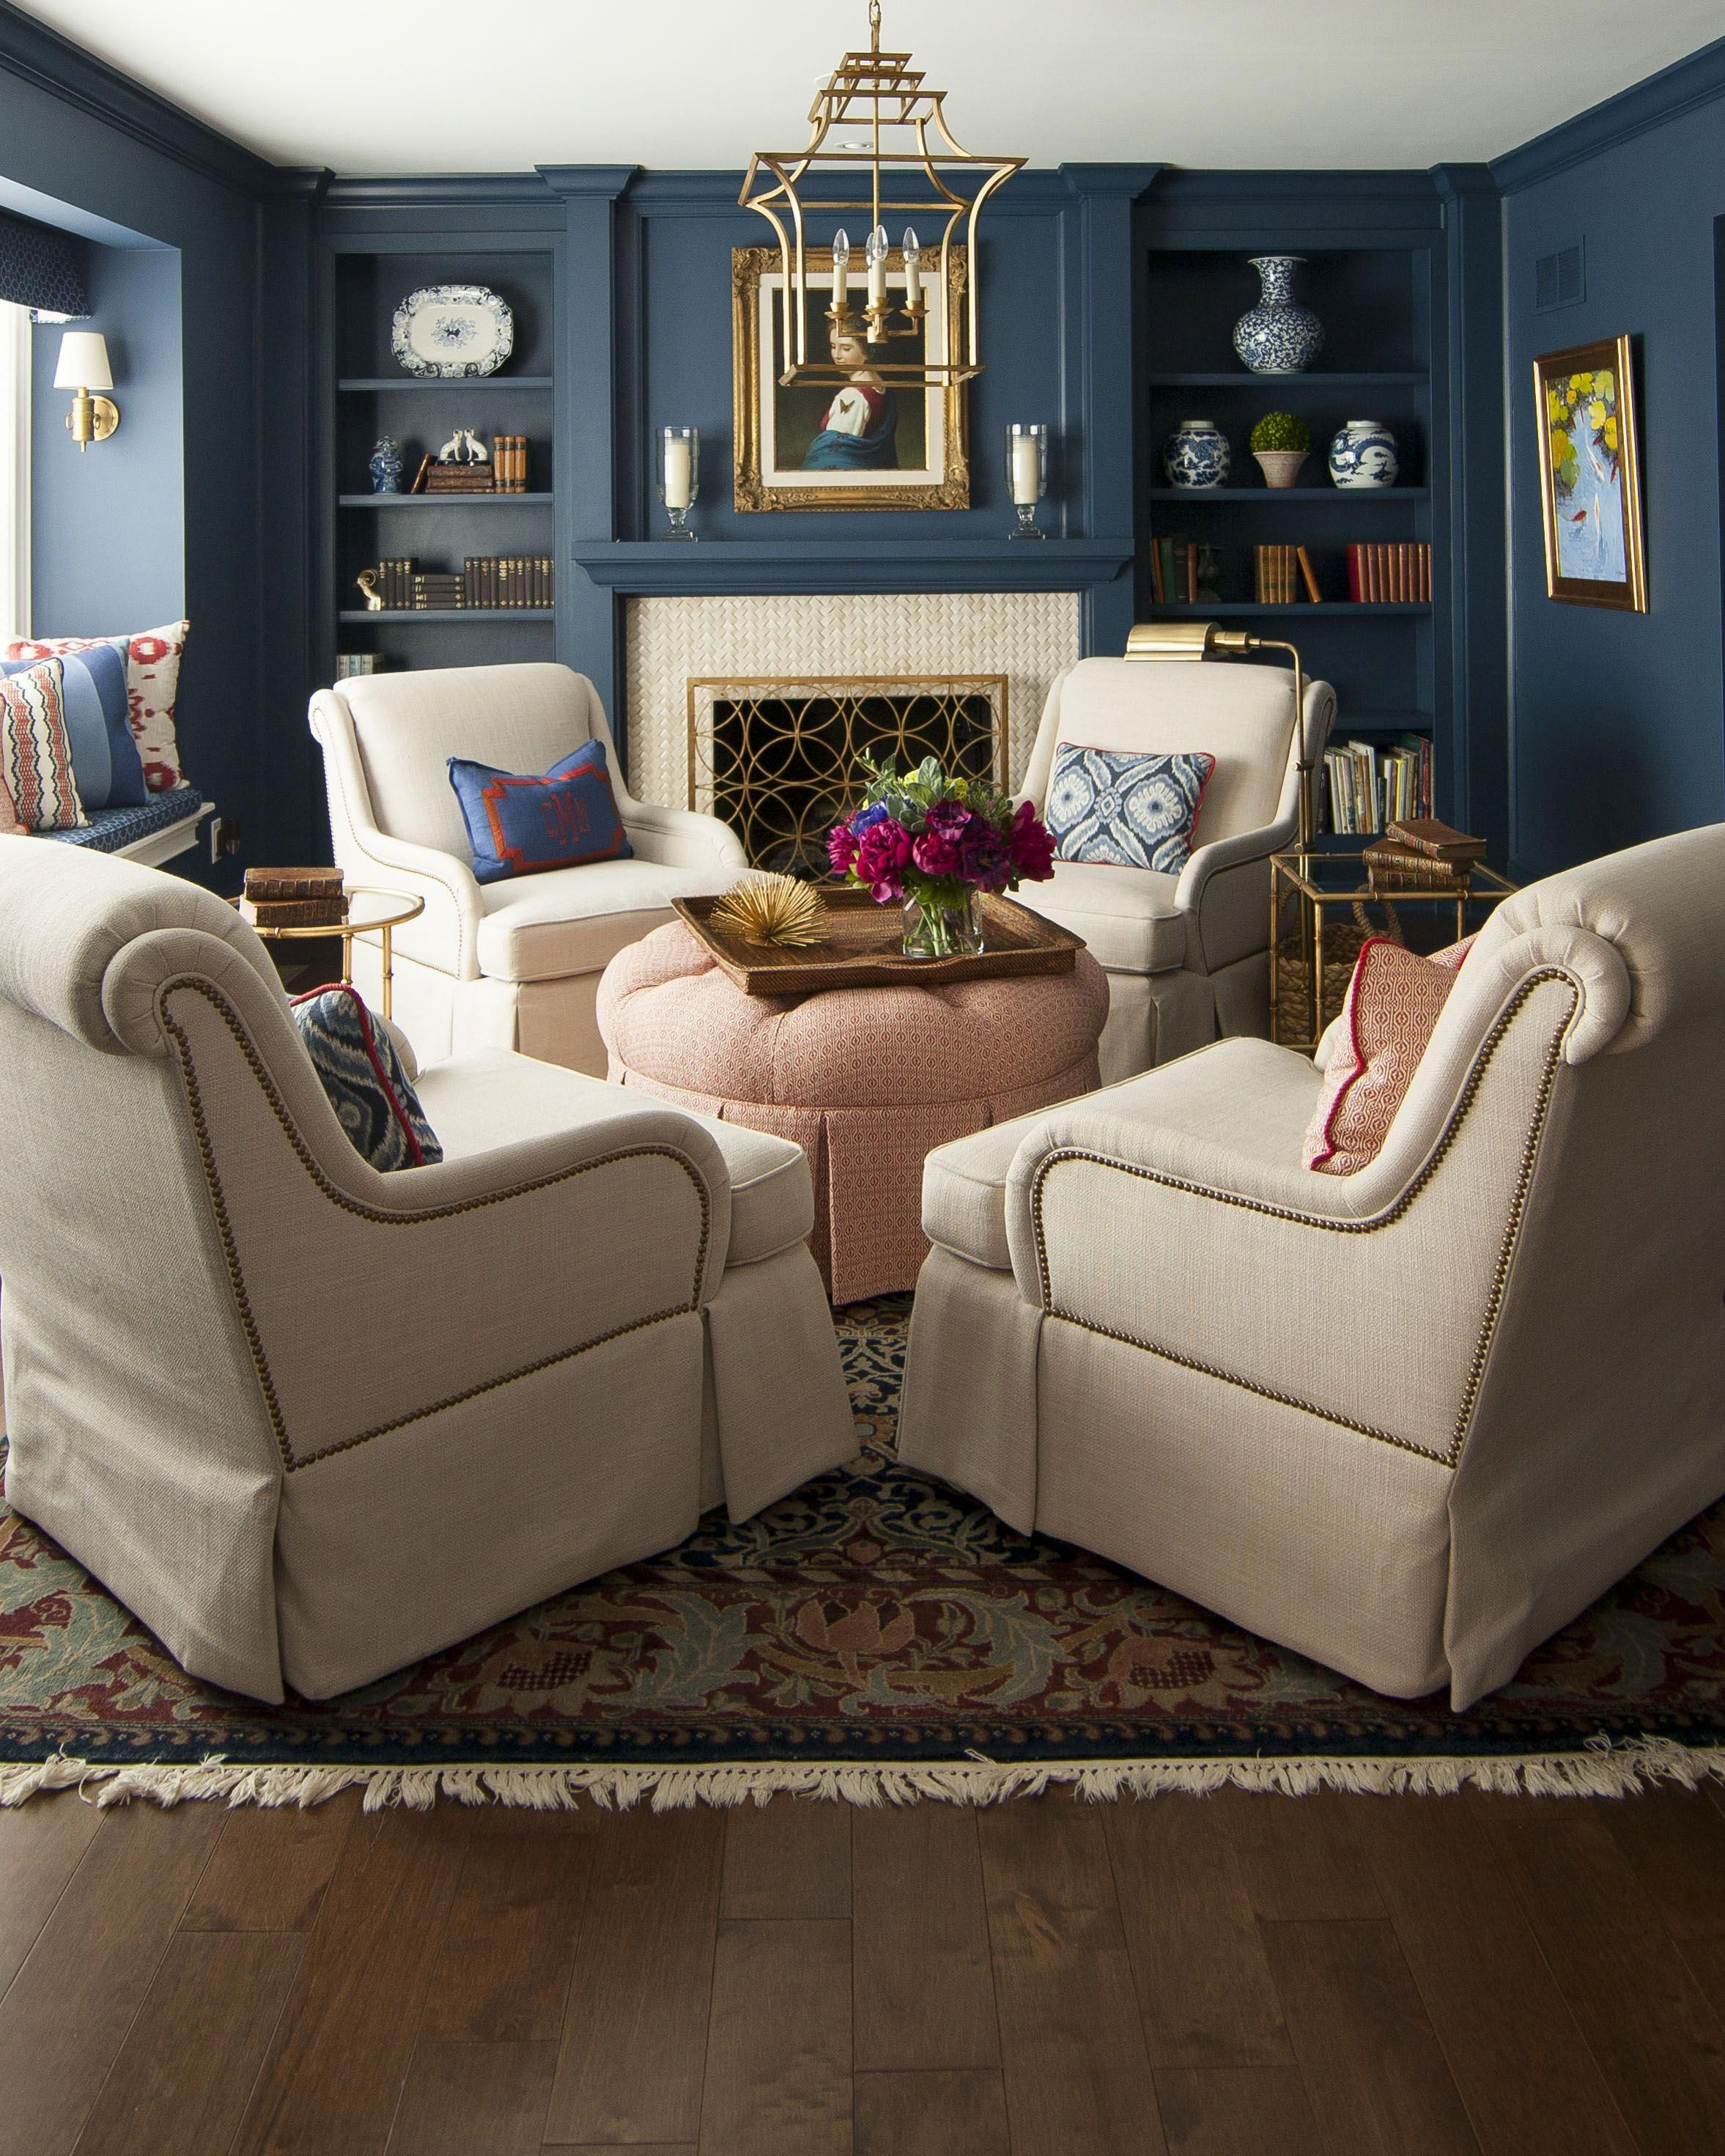 Four upholstered swivel chairs around a round ottoman